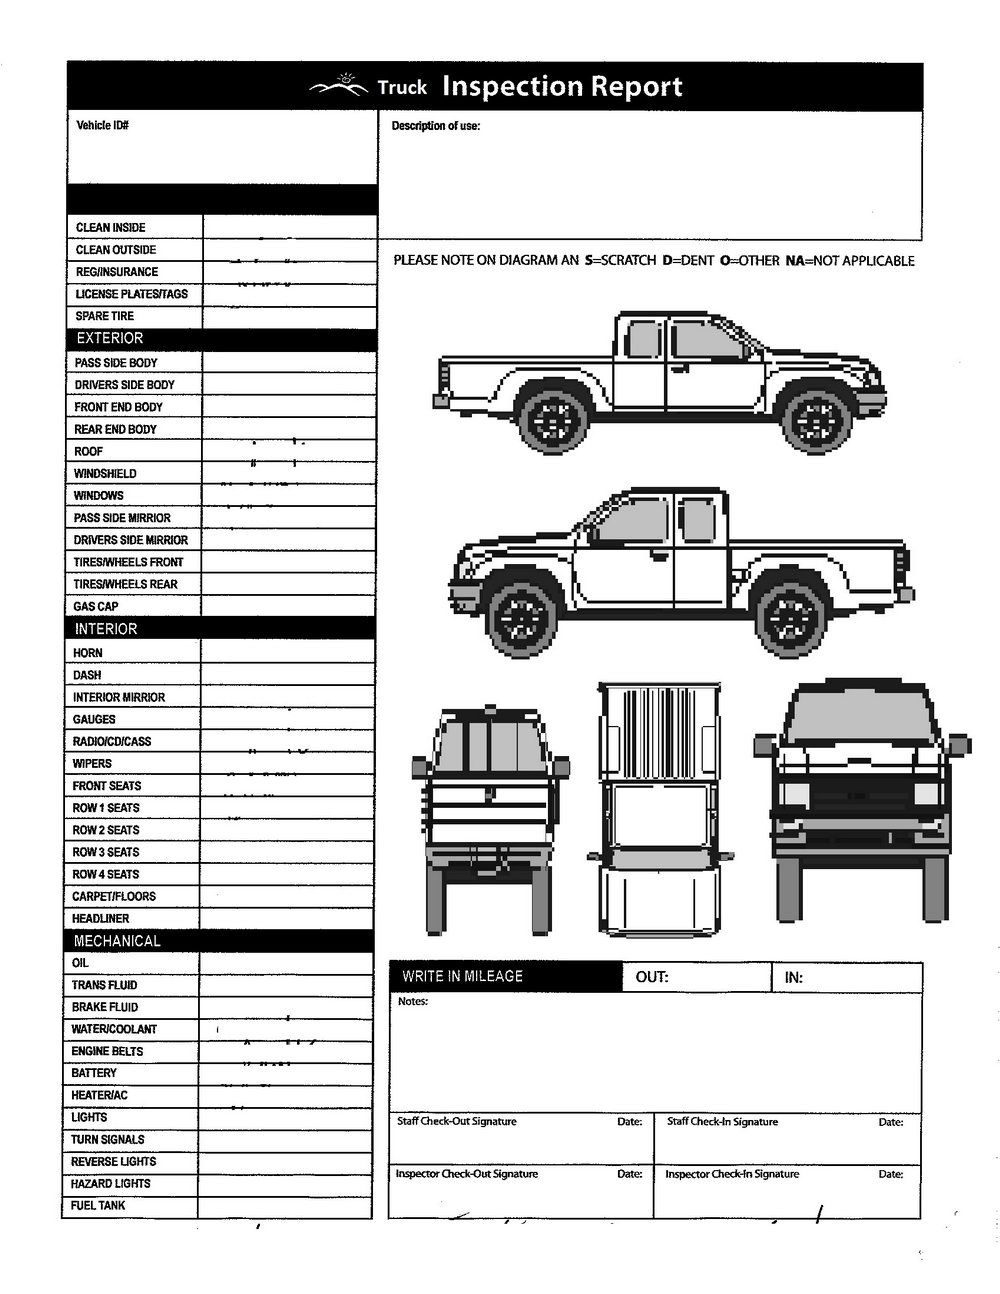 Vehicle Inspection Form Template Word